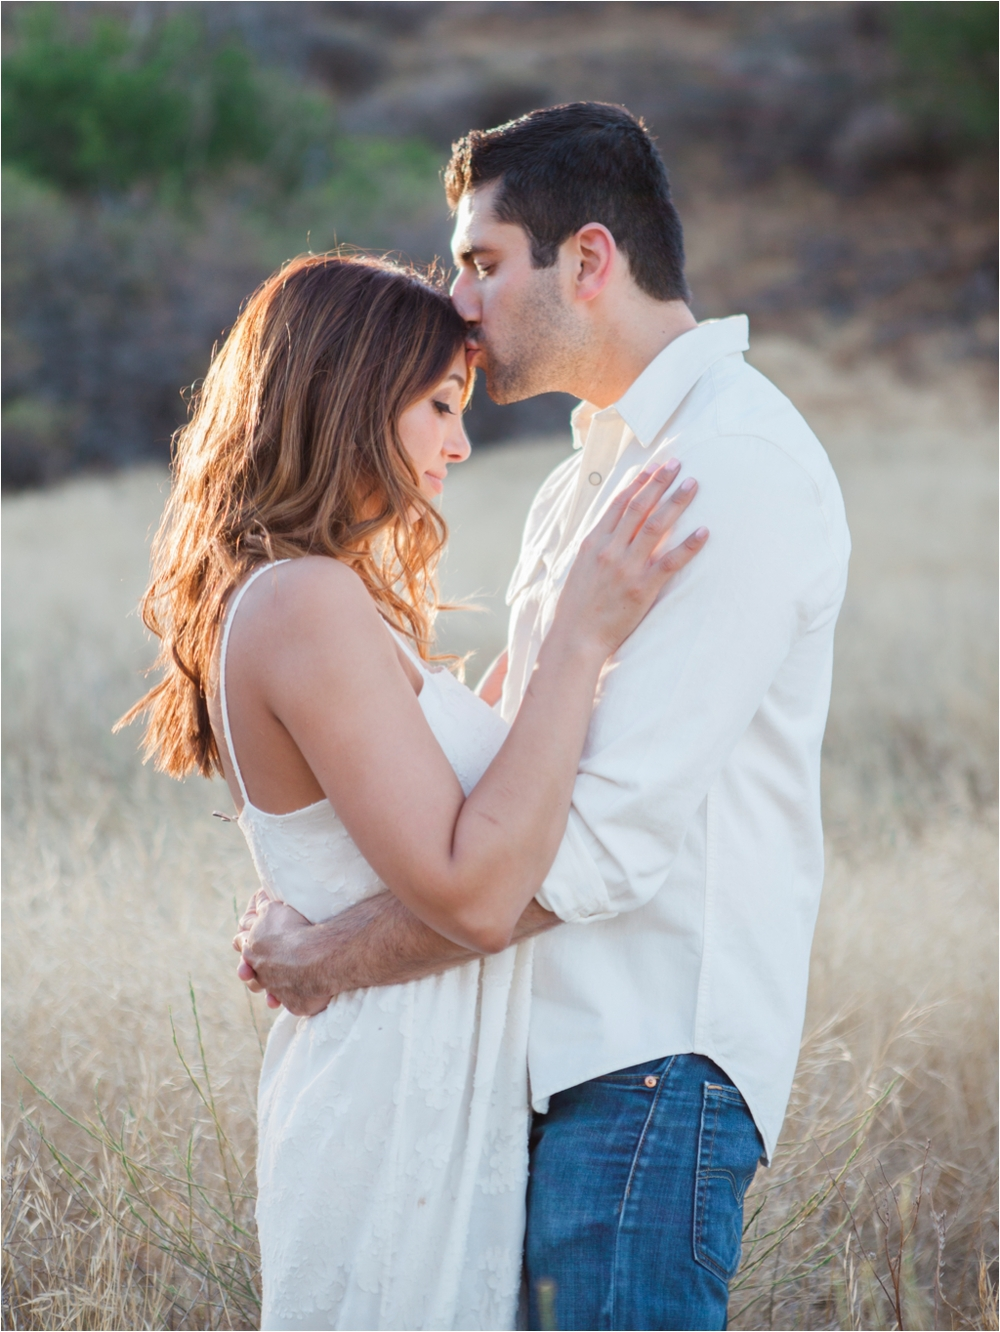 towsley canyon engagement session by San Luis Obispo Wedding photographer Skyla Walton1_0009.jpg